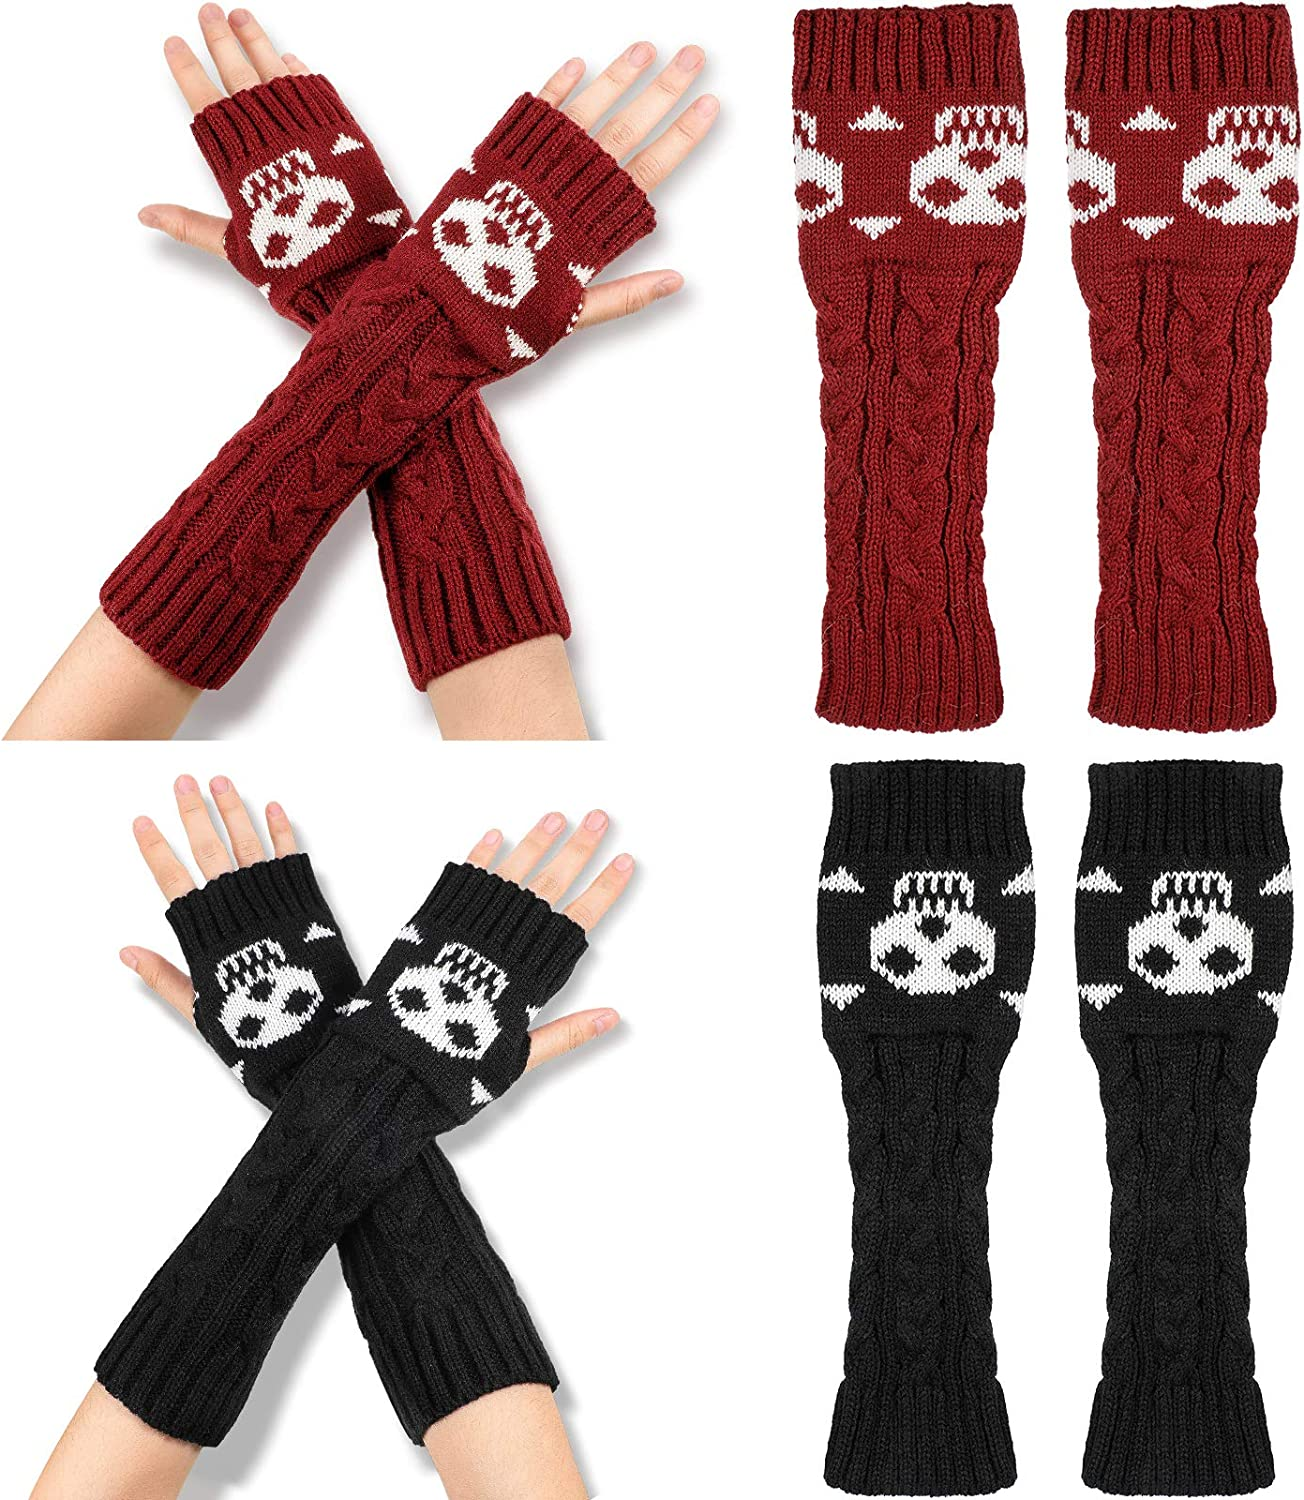 2 Pairs Winter Warm Cable Knit Fingerless Gloves Crochet Thumbhole Arm Warmers Mittens with Crossbones Jacquard Skull for Adult Winter Supply